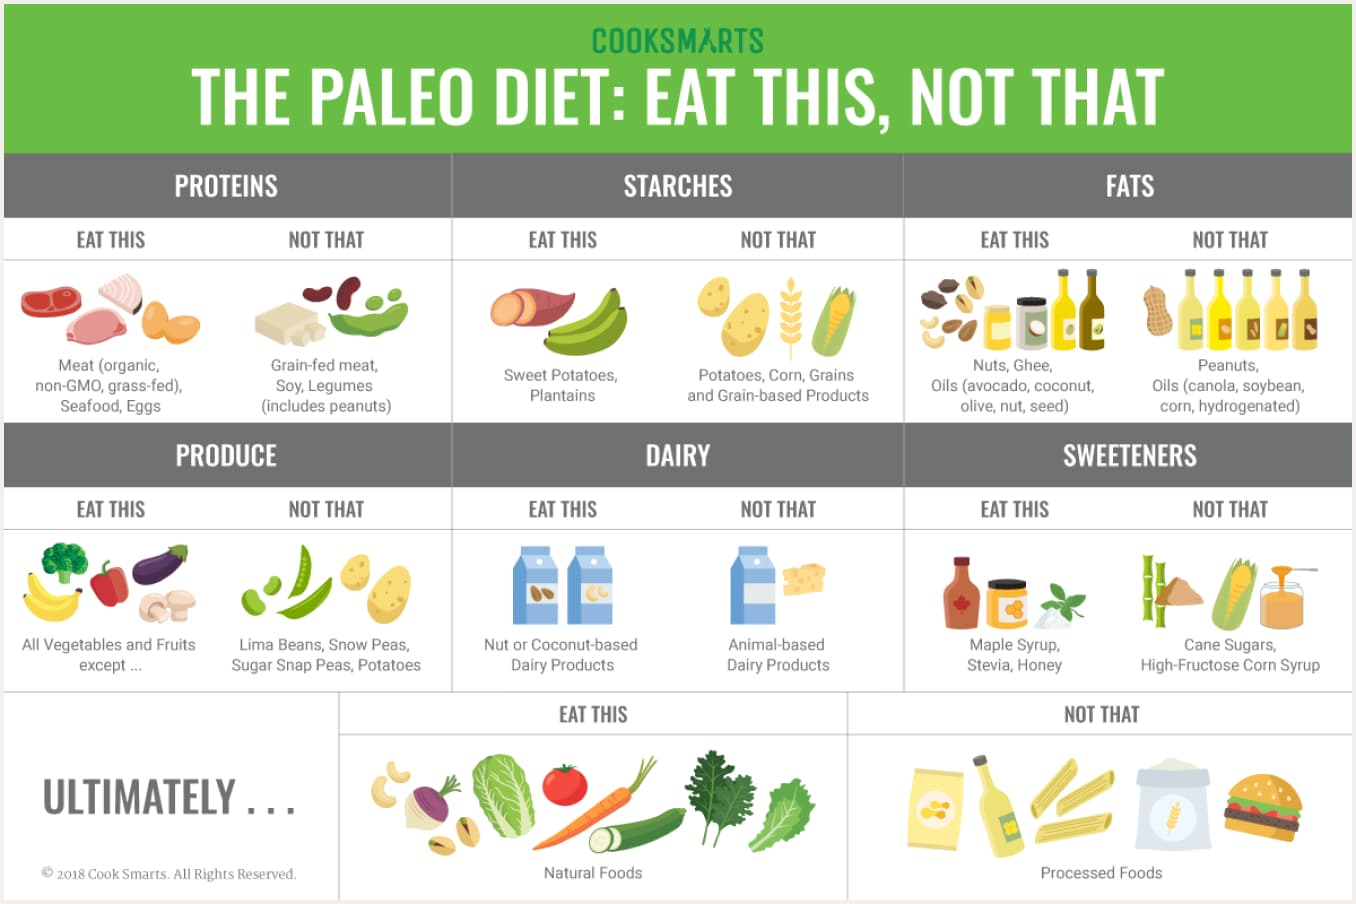 The paleo diet: eat this, not this